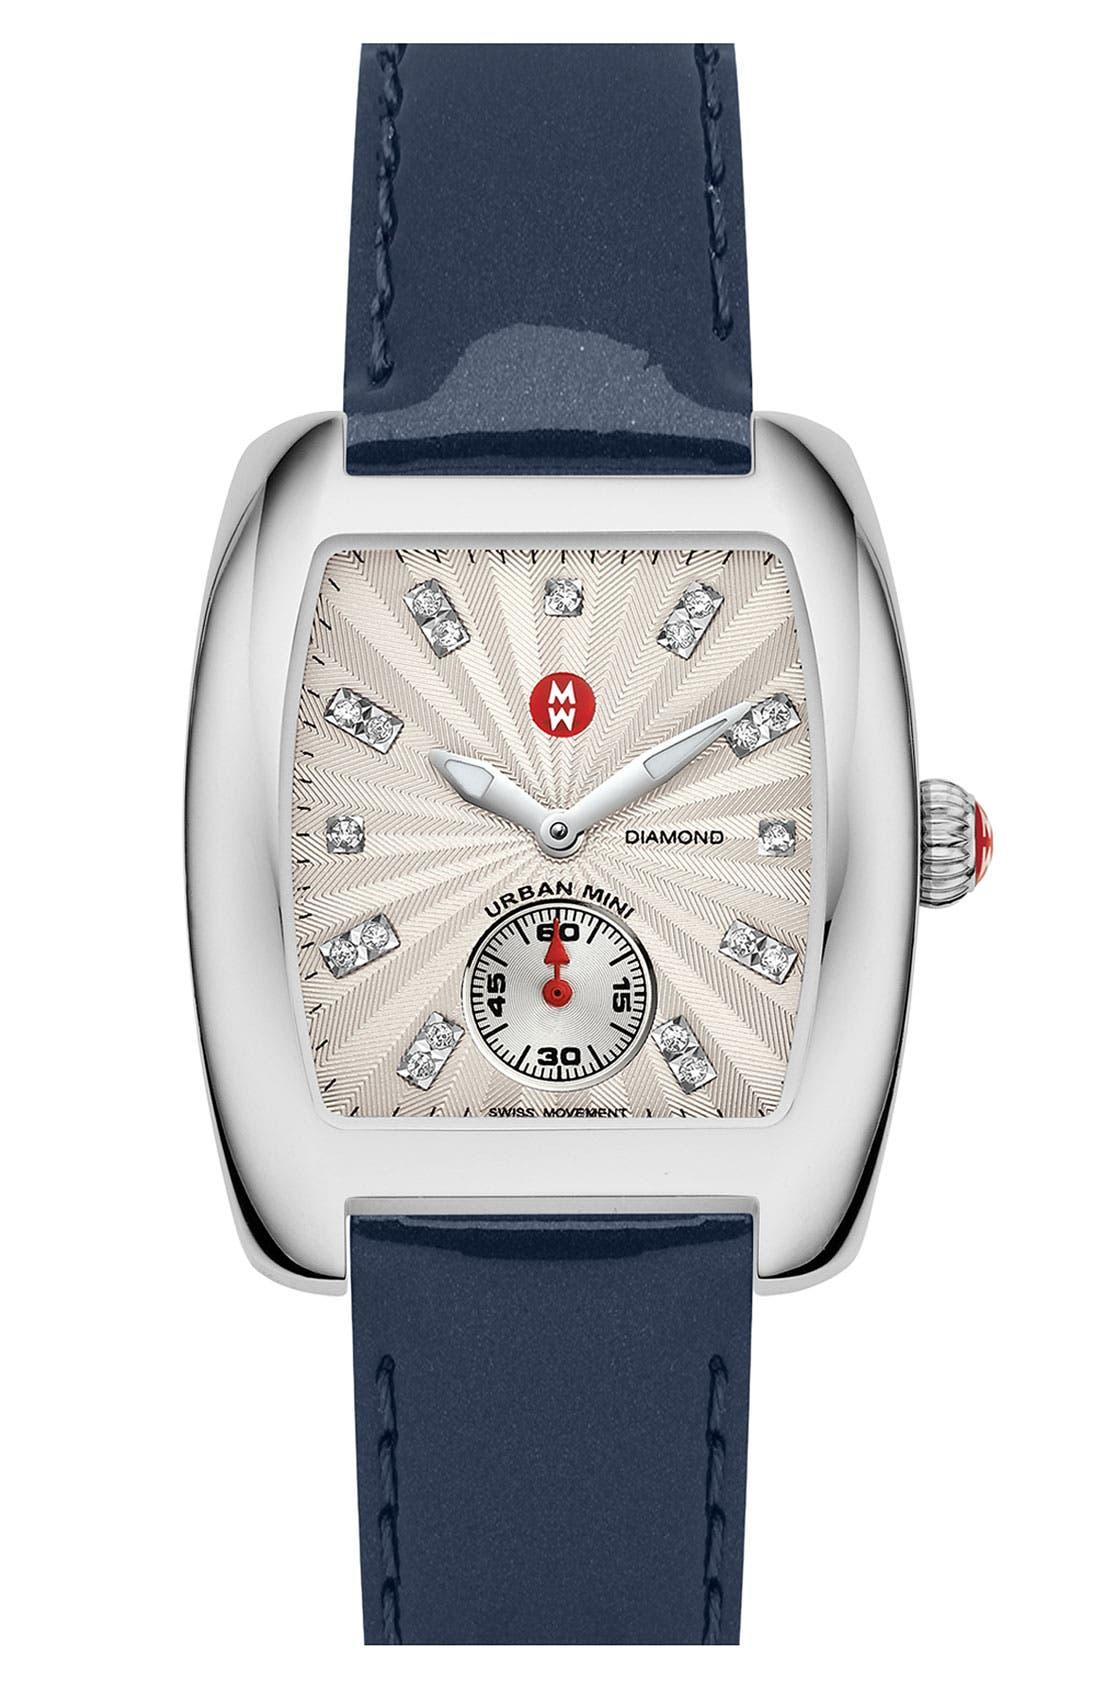 Alternate Image 1 Selected - MICHELE 'Urban Mini' Diamond Dial Watch Case & 16mm Navy Patent Leather Strap